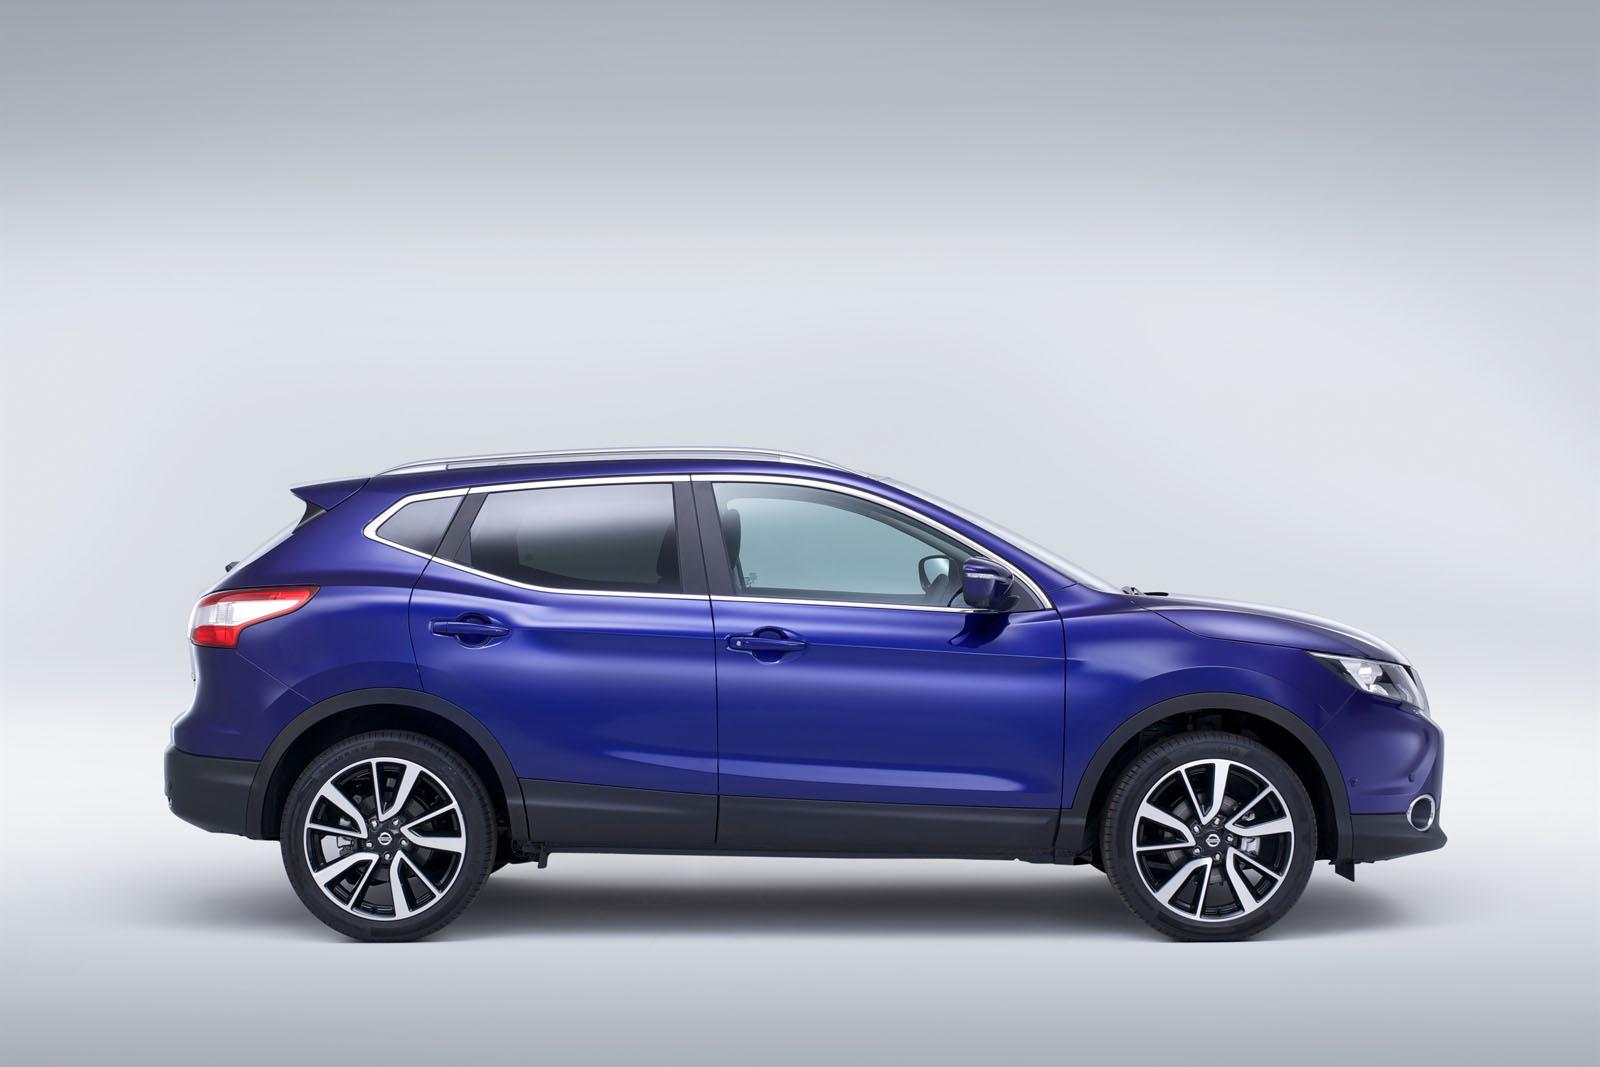 2014 Nissan Qashqai Blue Side Forcegt Com